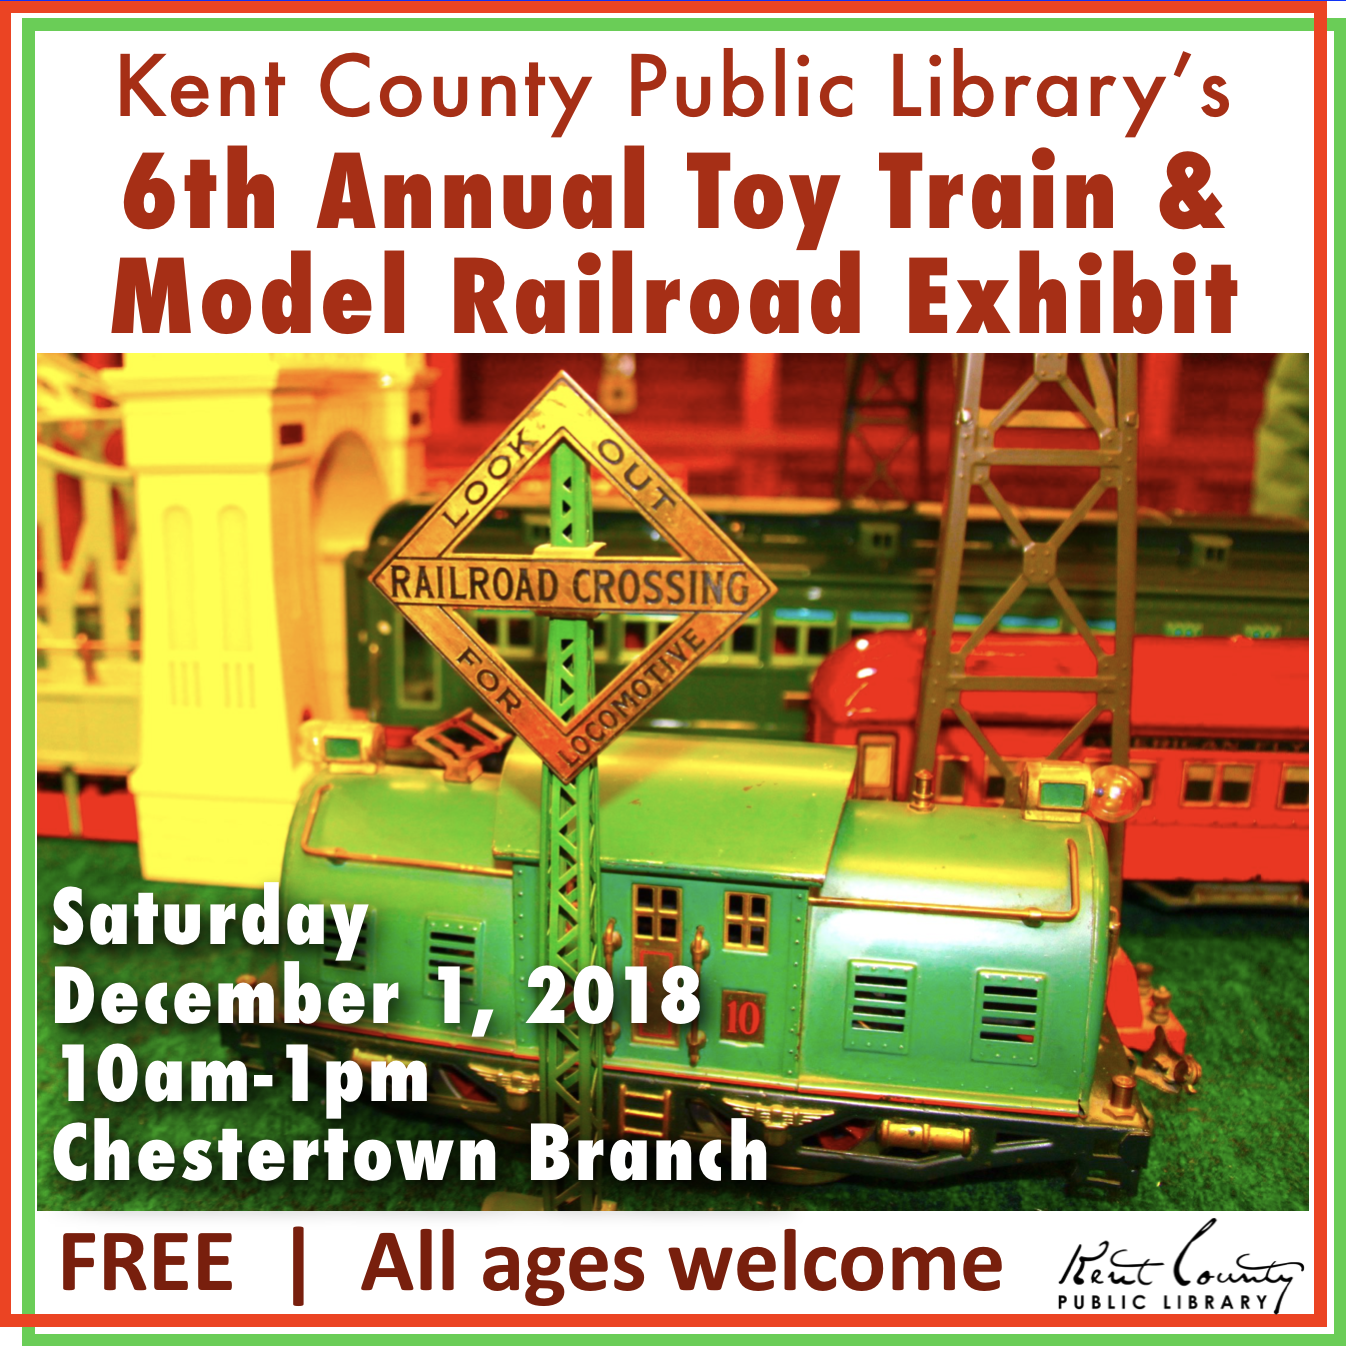 6th Annual Toy Train & Model Railroad Exhibit